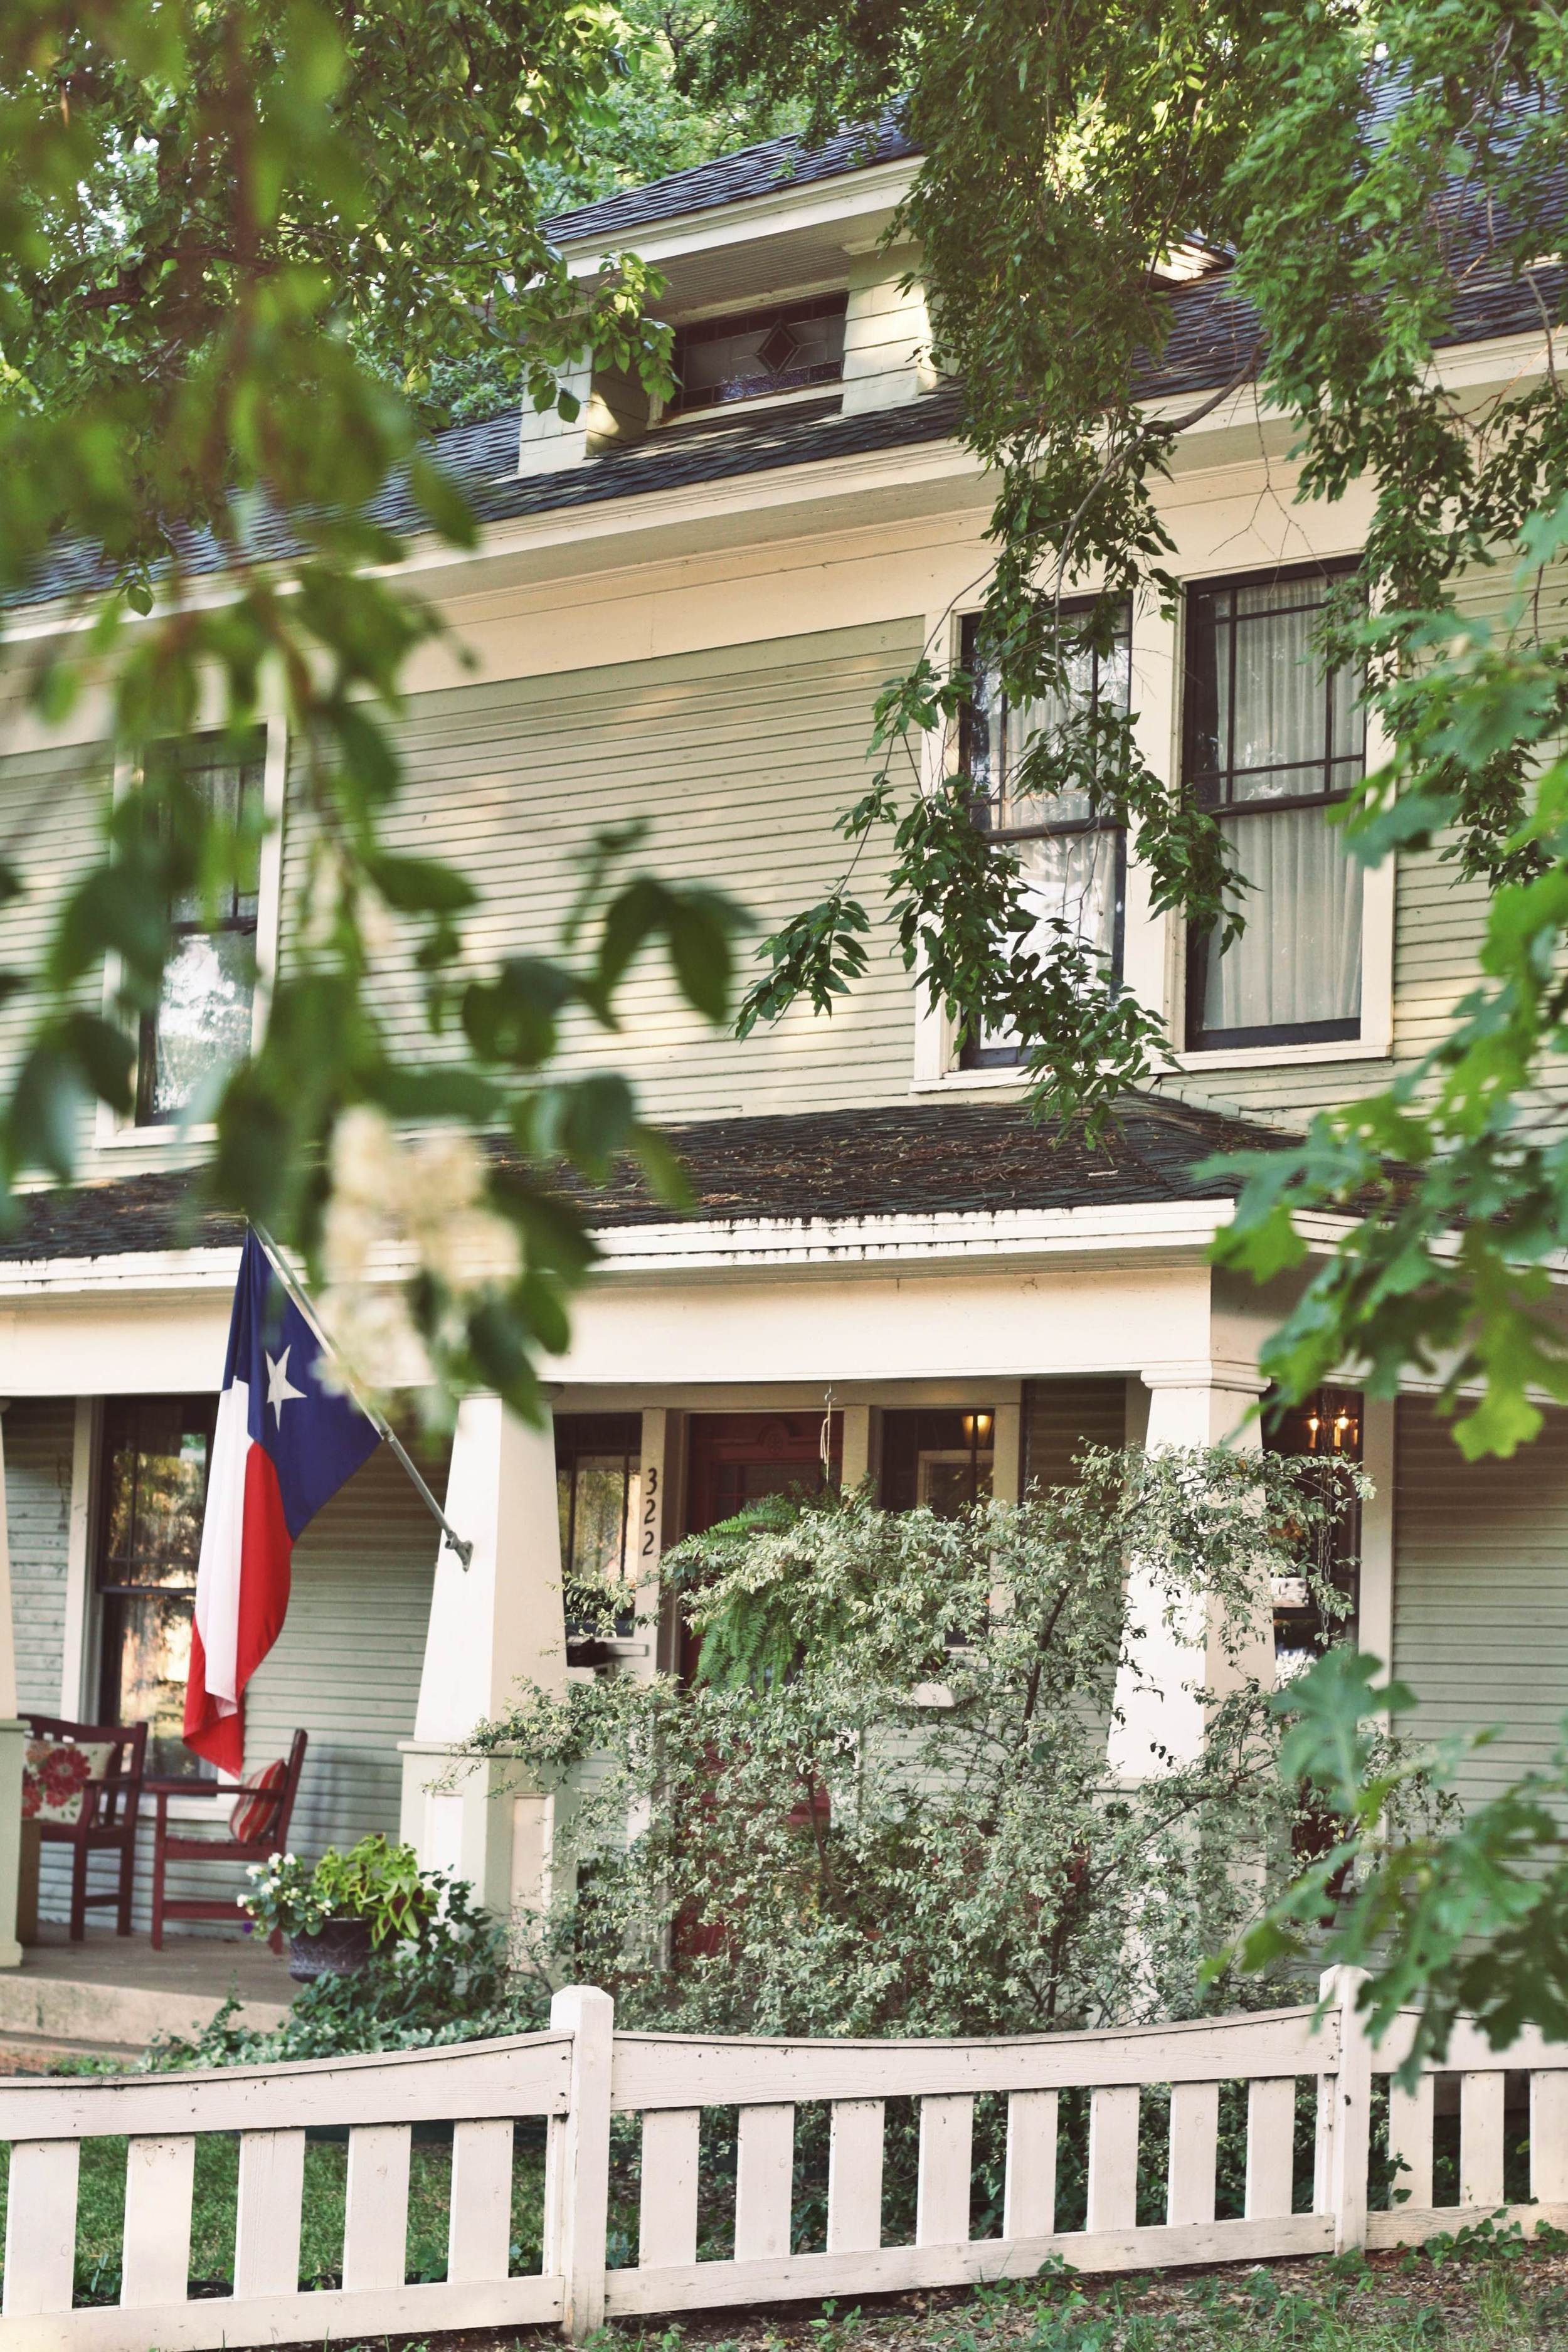 We headed into Kevin Roden's perfectly historic house for a living room show.